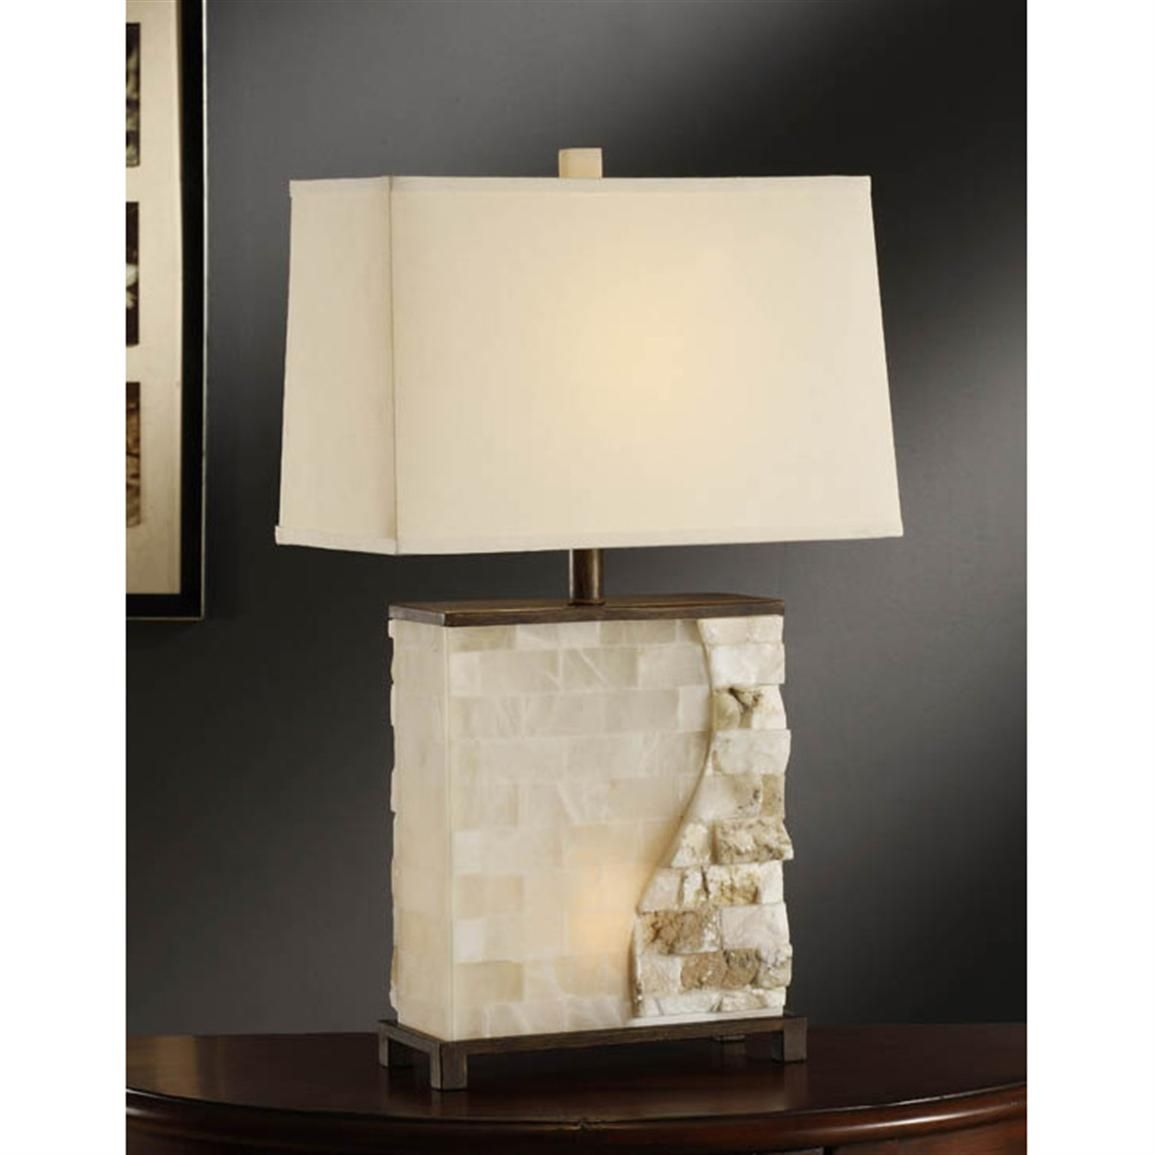 Crestview collection vista stacked stone table lamp lamps stacked stone table lamp stacked stone rectangular table lamp with nightlight translucent stone finish rectangle shade in natural linen fabric measures geotapseo Choice Image